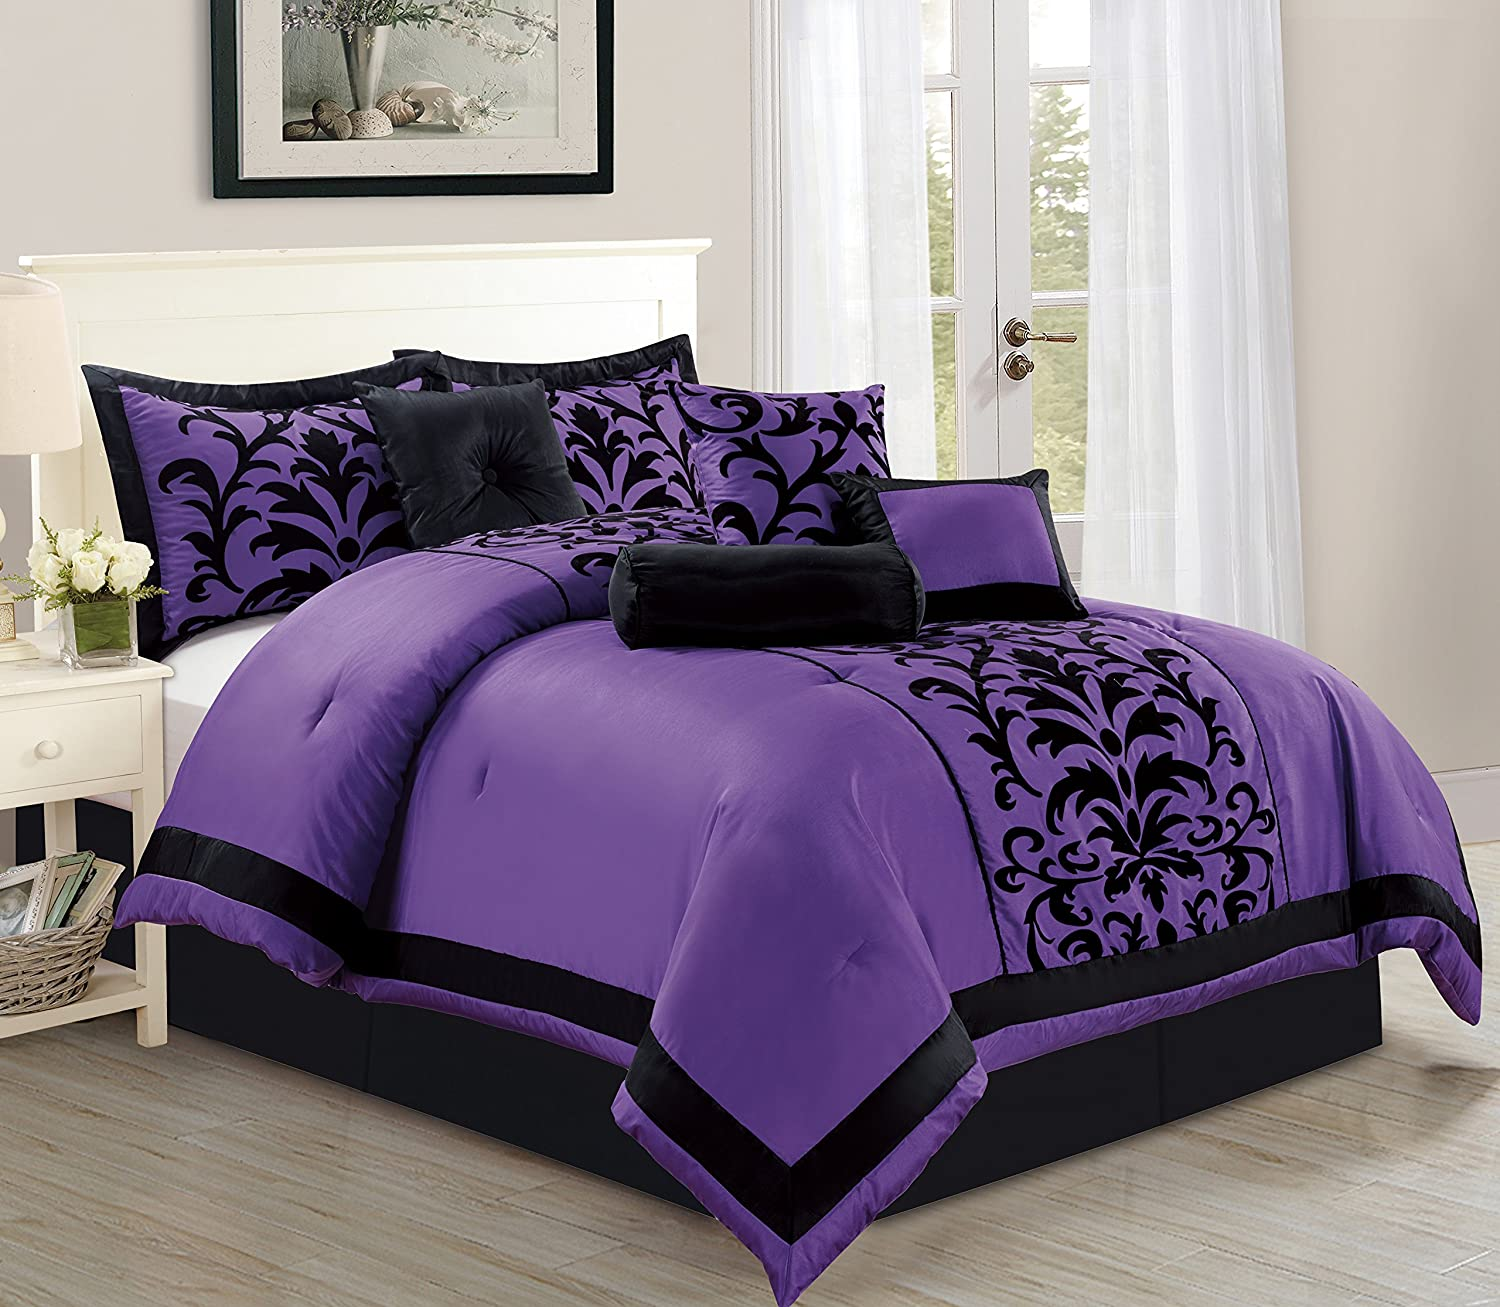 bed bag purple a size thinkpawsitive co design bedspreads in quilts queen